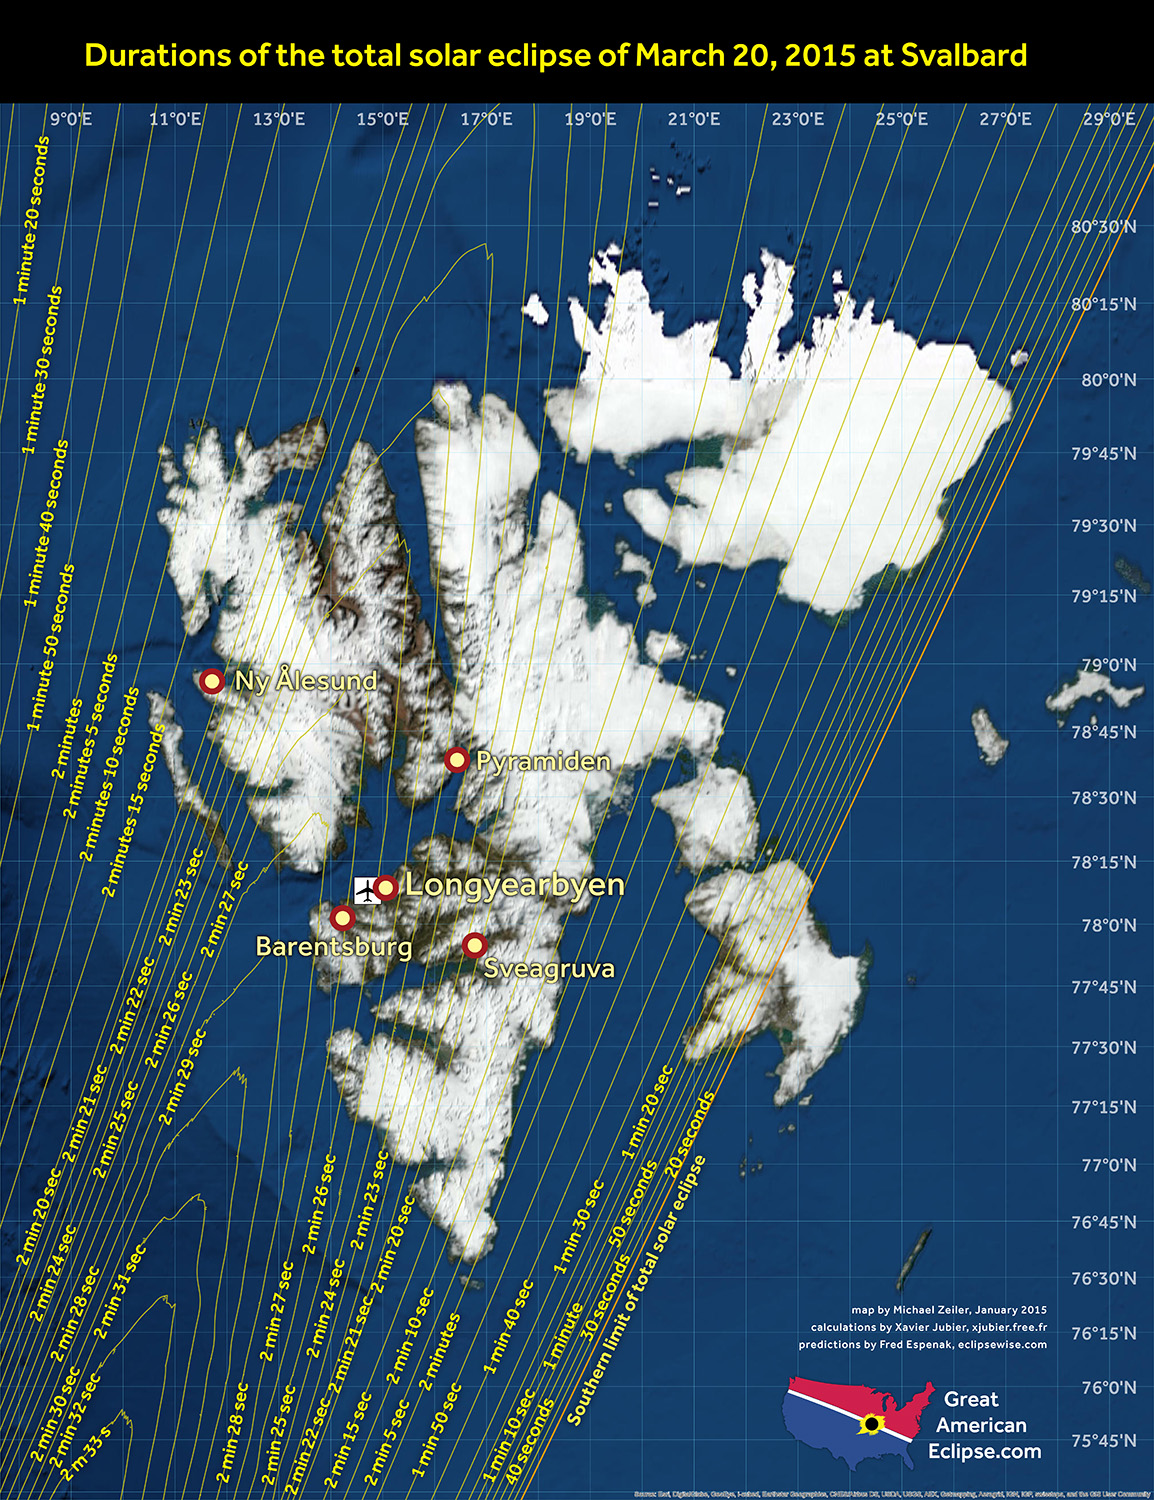 click to see a higher resolution image of this map